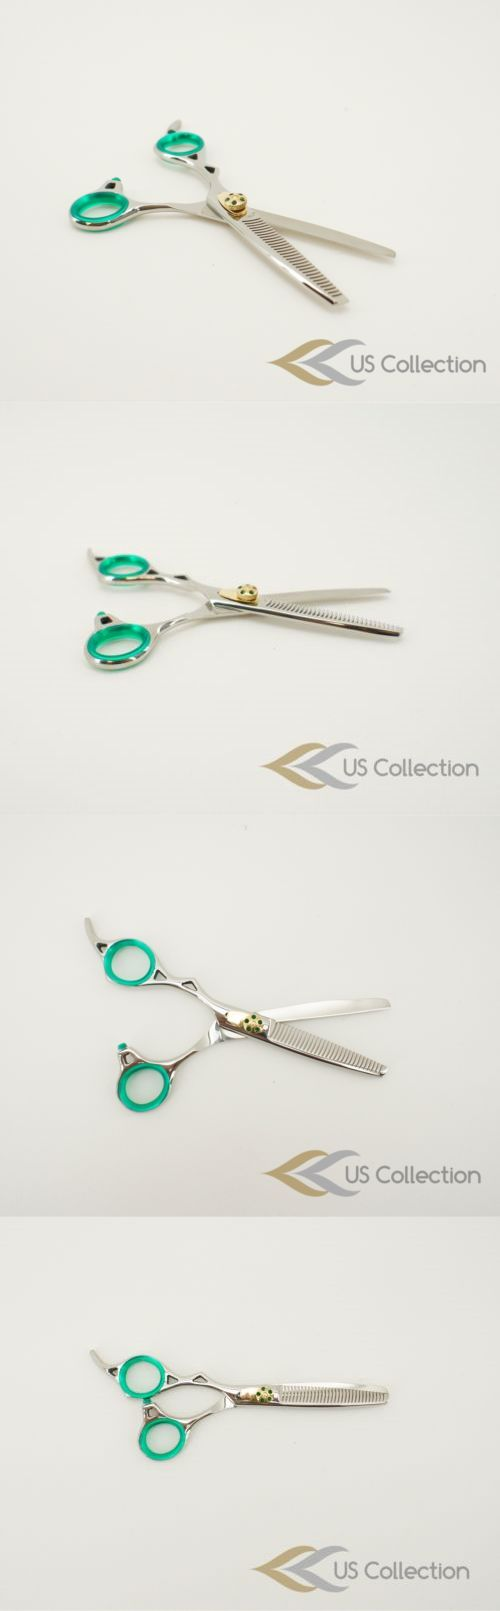 Professional Styling Tools: 6 Single Edged Barber Thinning Hair Shears Scissors BUY IT NOW ONLY: $31.62